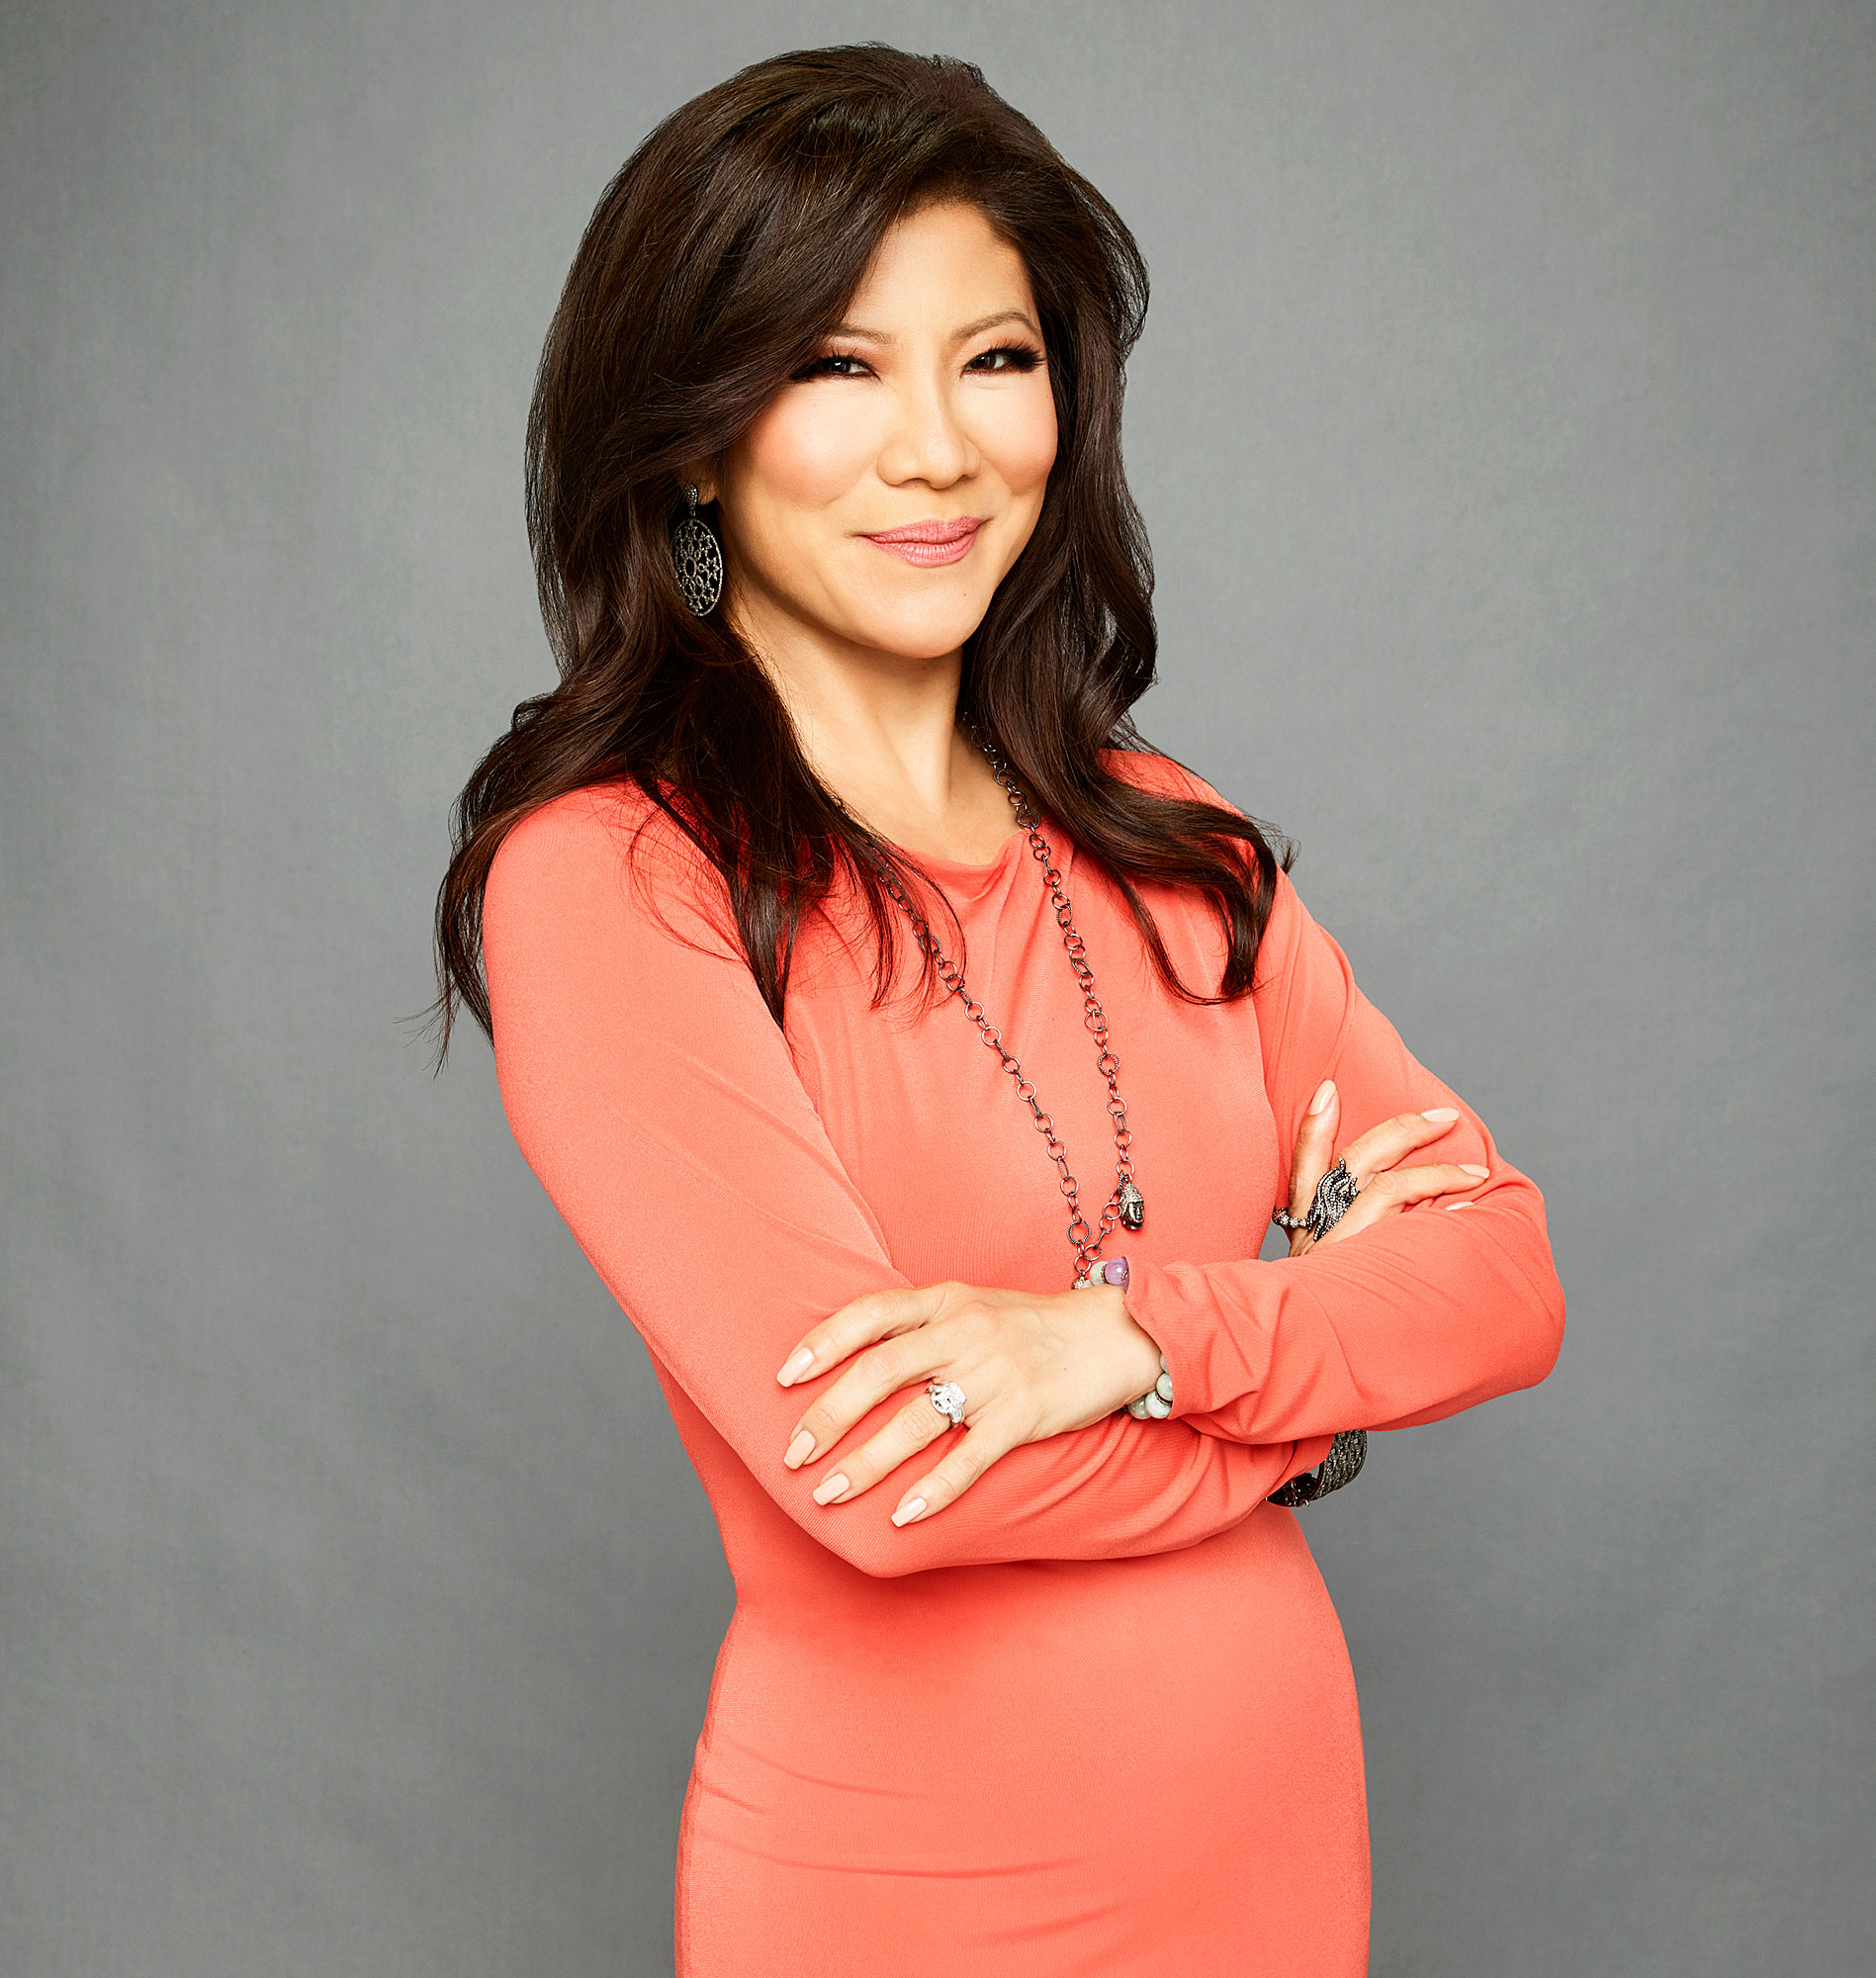 Carrie Ann Inaba Talks Replacing Julie Chen The Talk - Julie Chen.